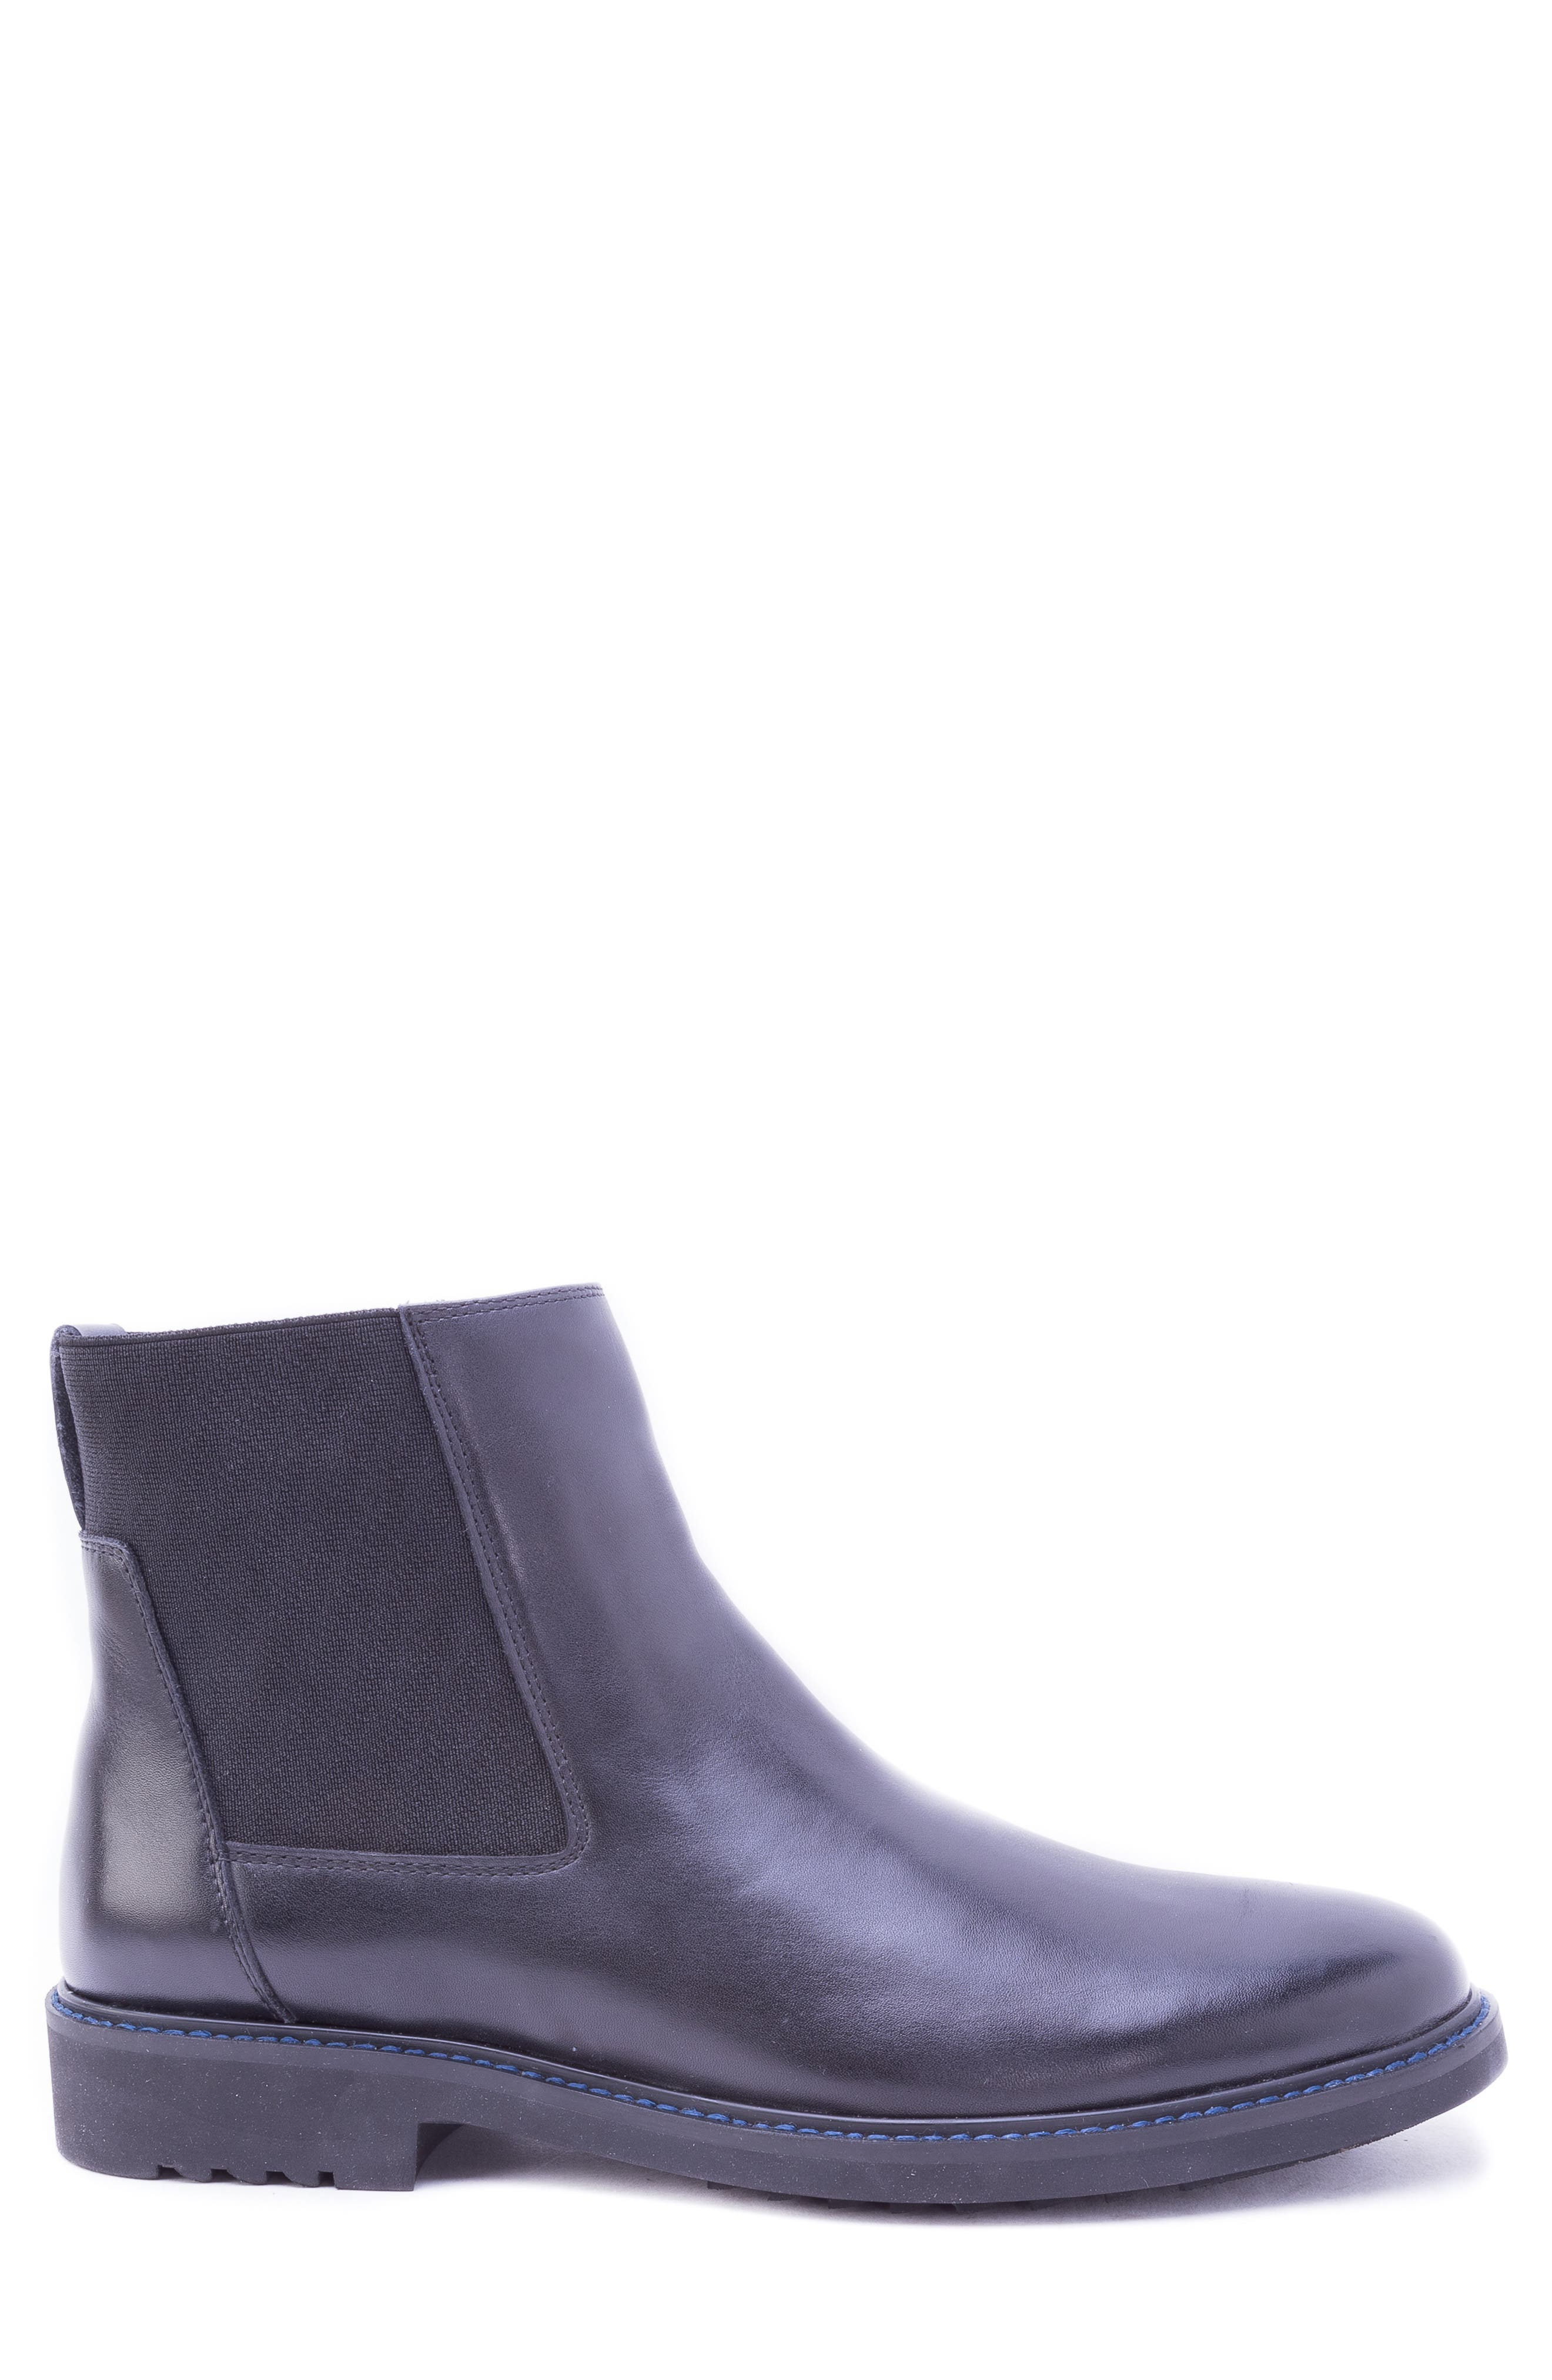 Riviere Chelsea Boot,                             Alternate thumbnail 3, color,                             001